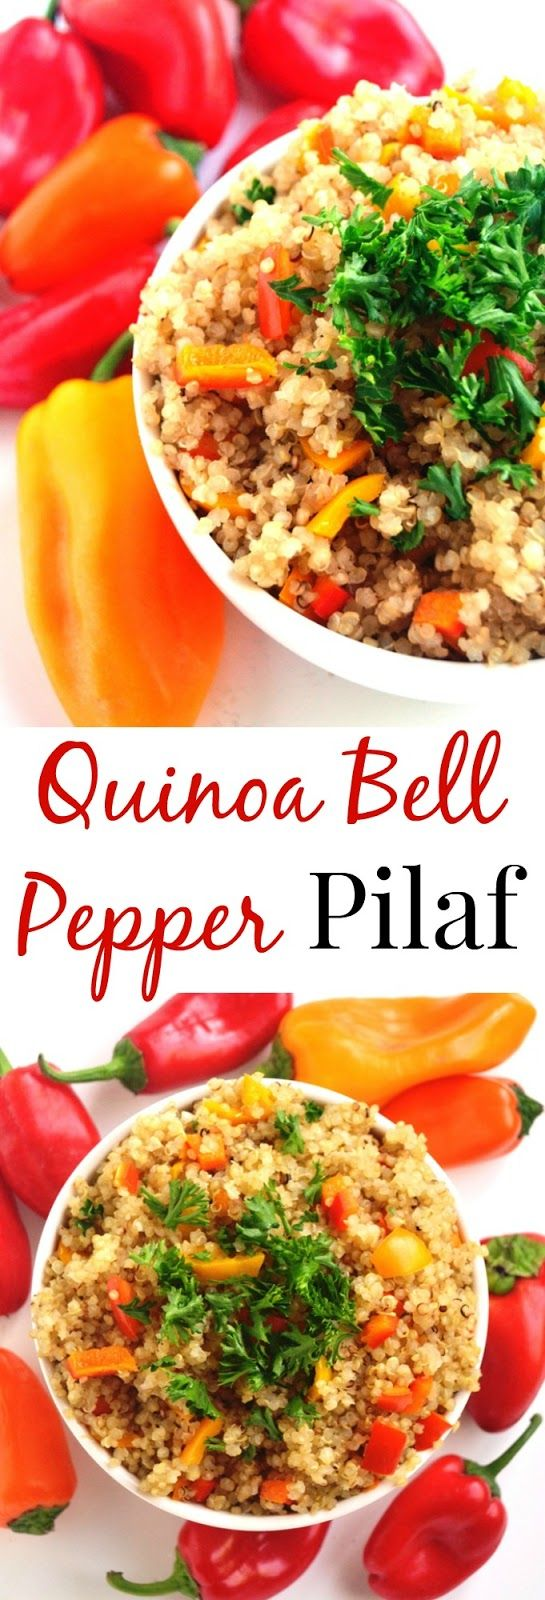 Photo of Quinoa Bell Pepper Pilaf